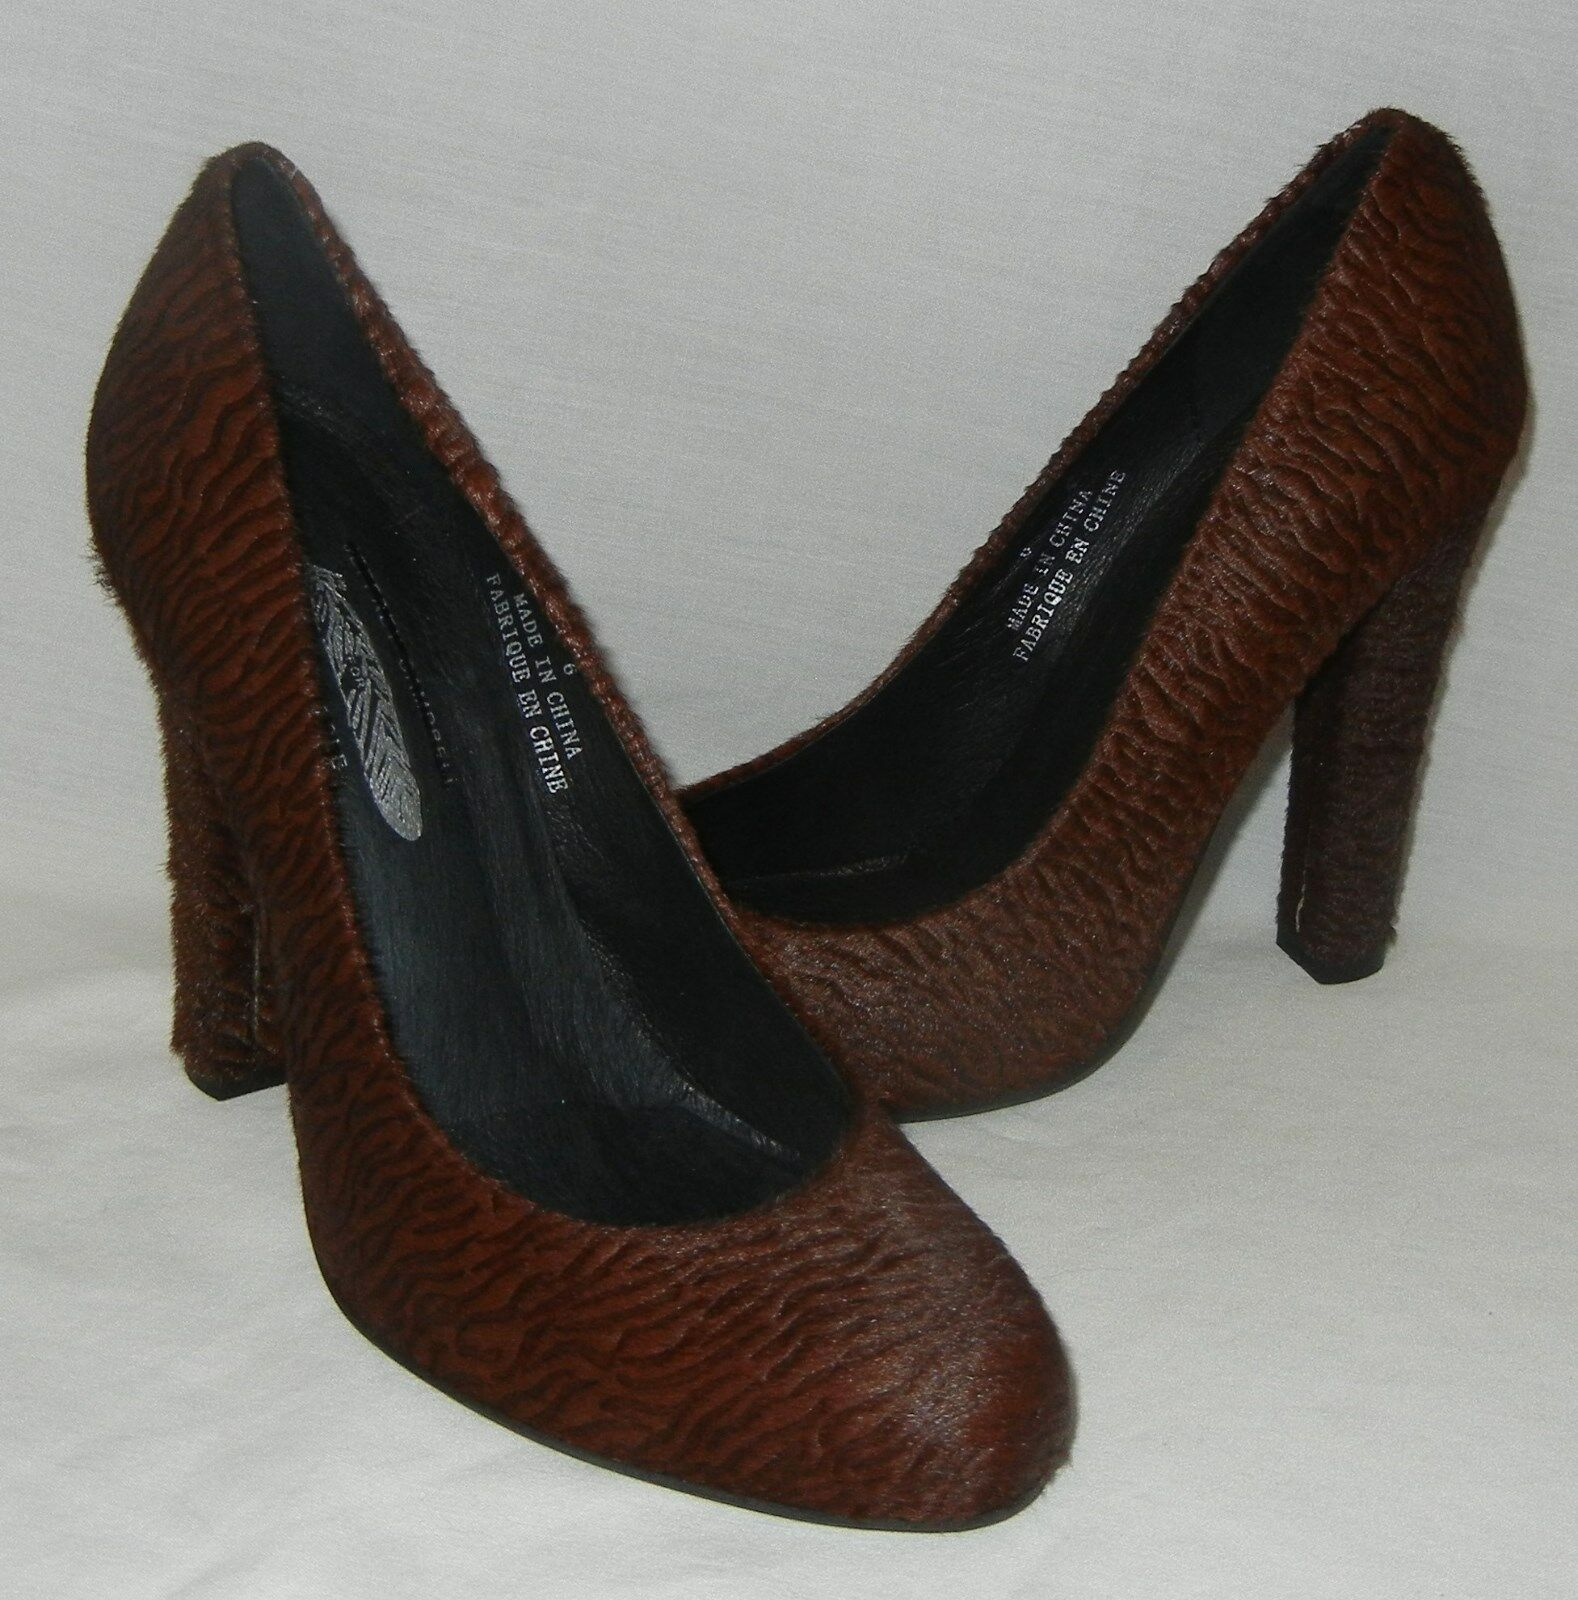 Jeffrey Campbell Women's Valencia Brown Leather Pumps Heels Retail  148 size 7.5